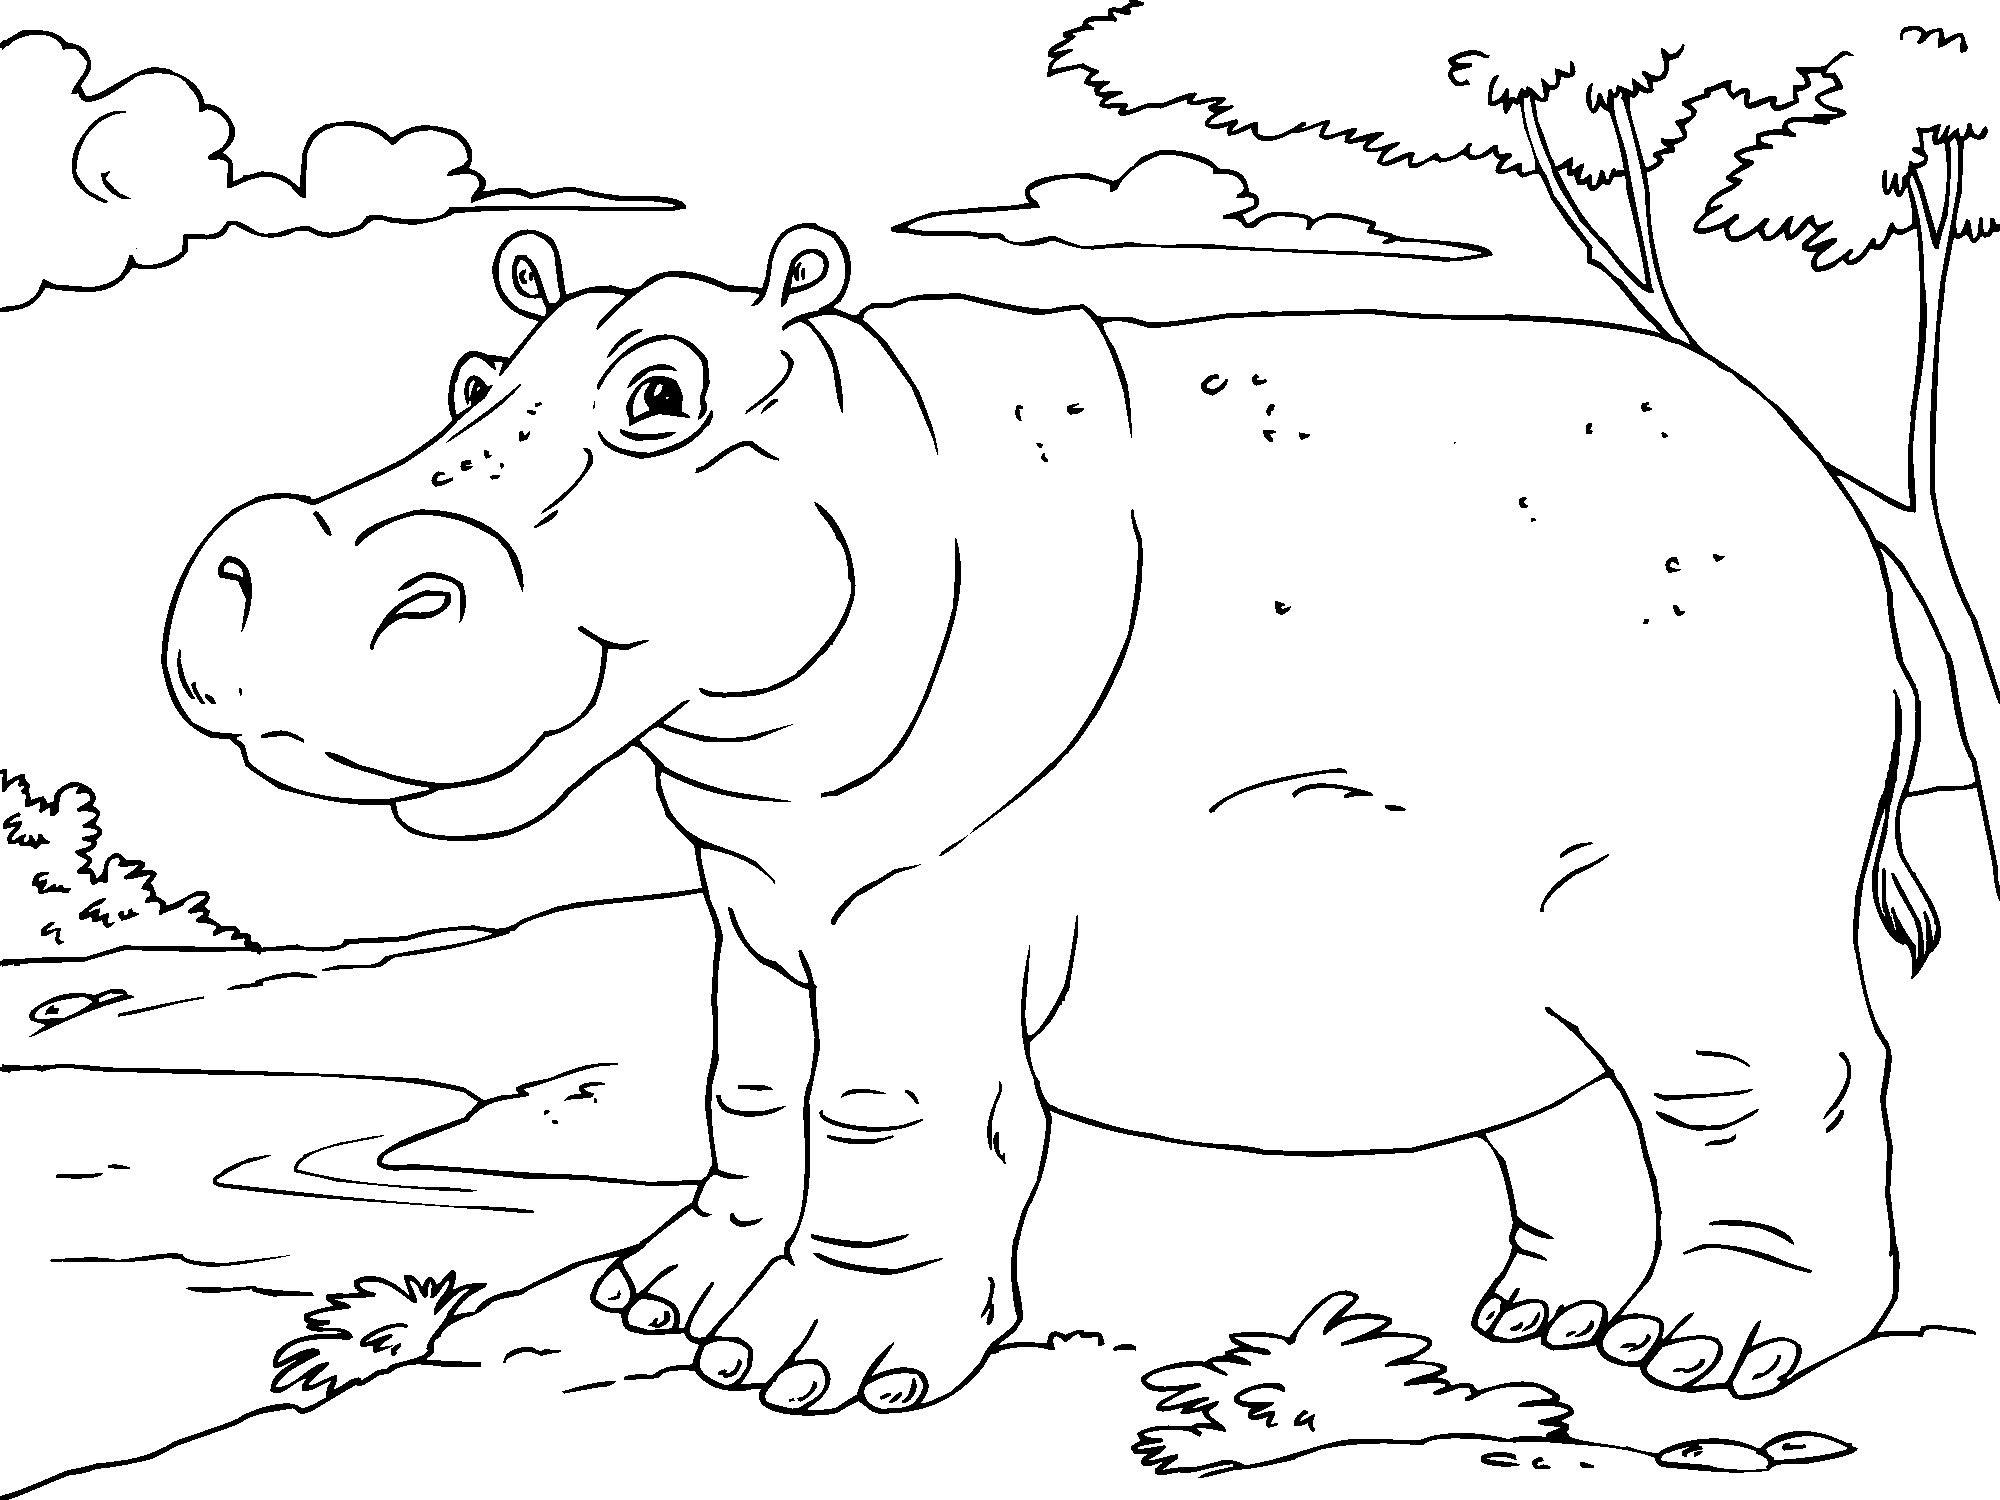 coloring picture hippo 10 cute free printable hippo coloring pages for toddlers picture coloring hippo